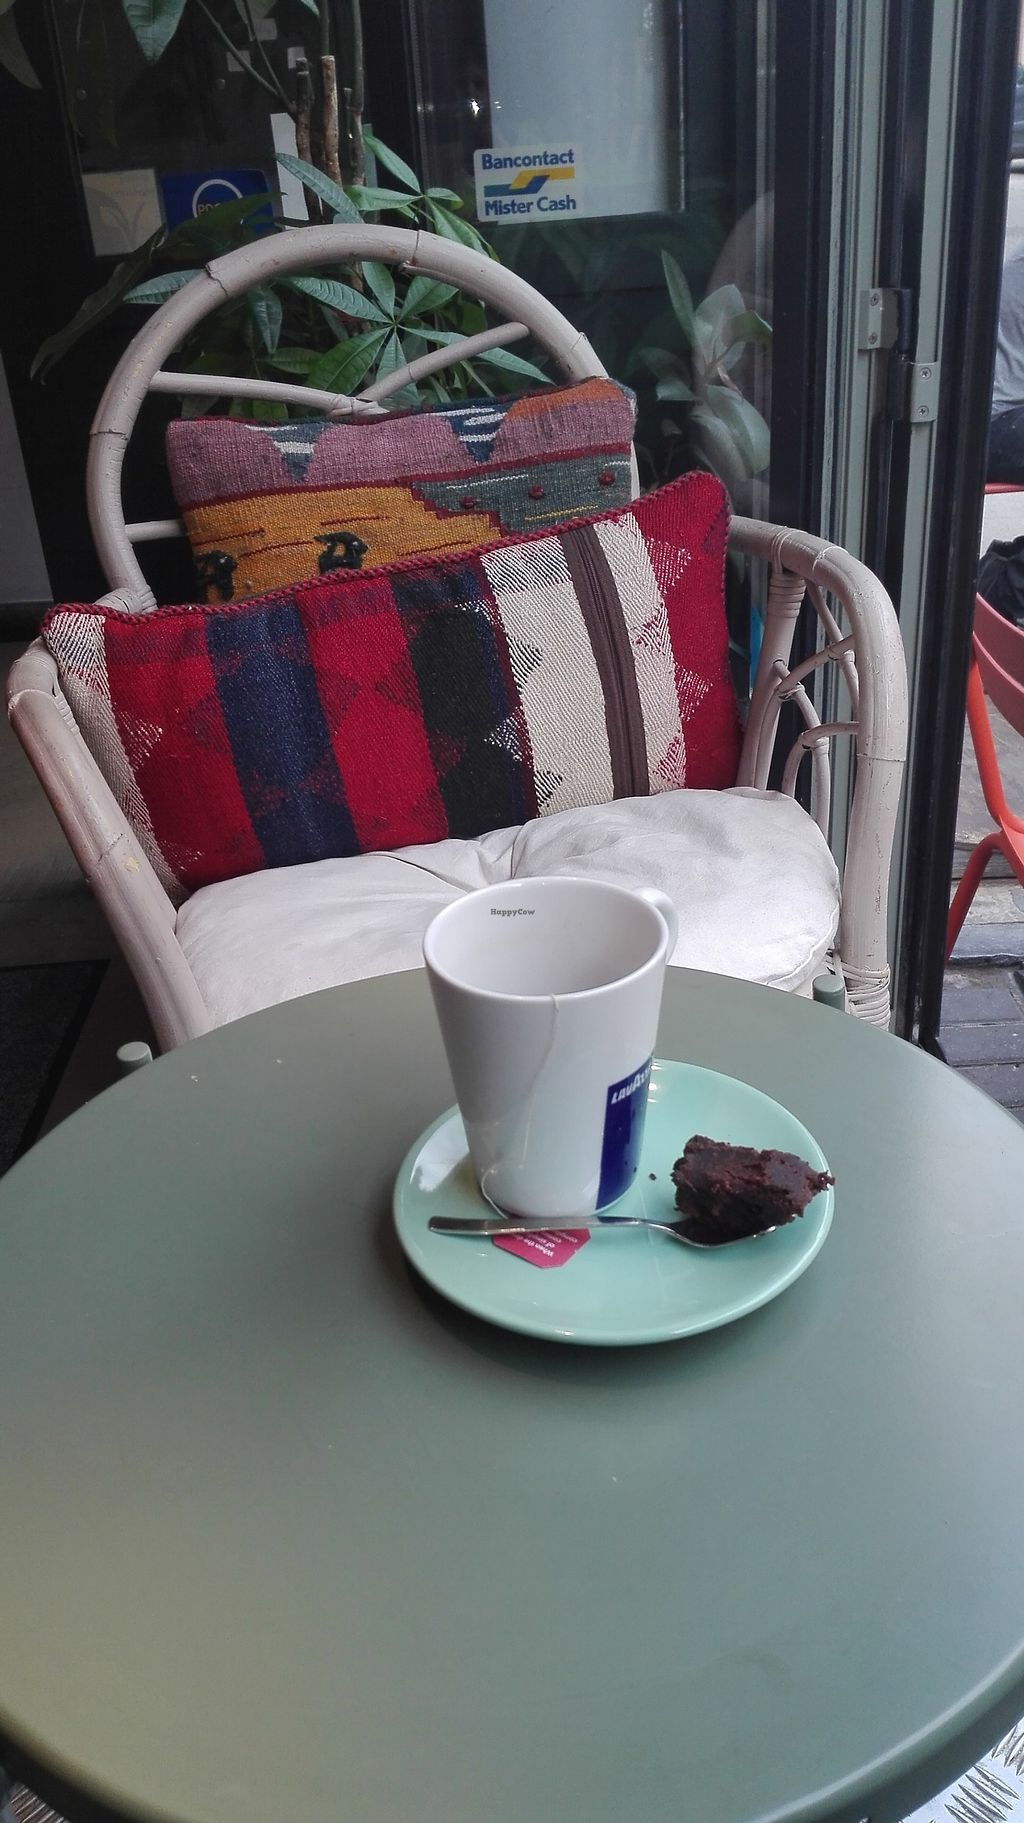 """Photo of Greenway  by <a href=""""/members/profile/TytoAlba"""">TytoAlba</a> <br/>drinking tea <br/> February 14, 2018  - <a href='/contact/abuse/image/10031/359326'>Report</a>"""